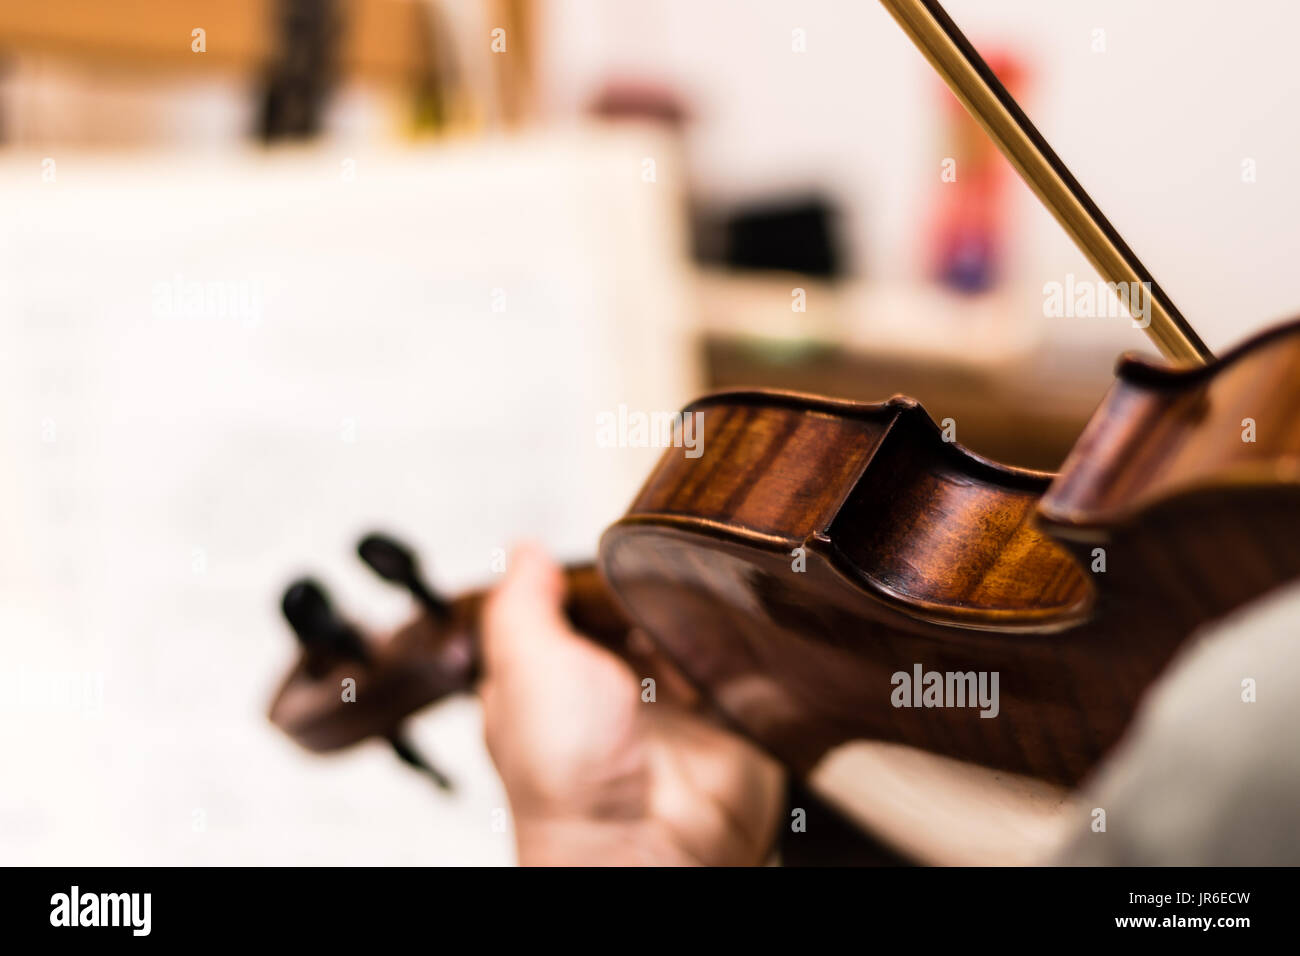 Musician playing the brown violin. Shallow depth of field. - Stock Image